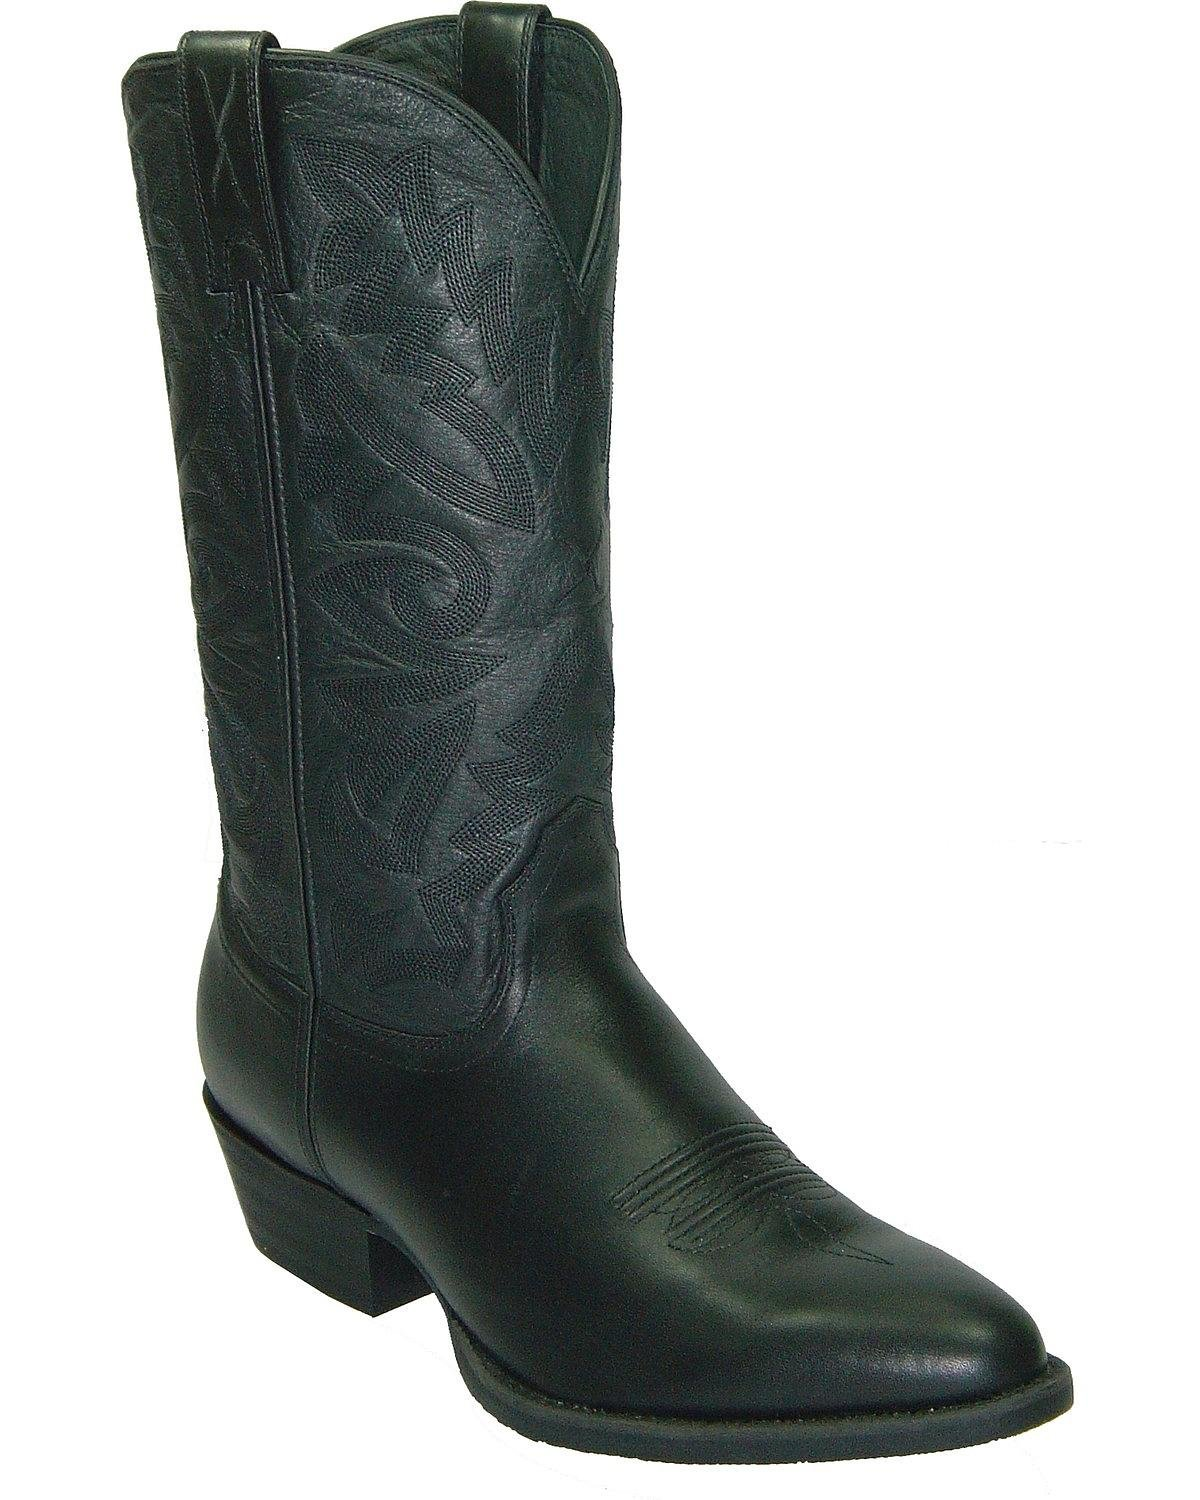 Twisted X Men's Western Cowboy Boot Round Toe Black 12 D(M) US by Twisted X